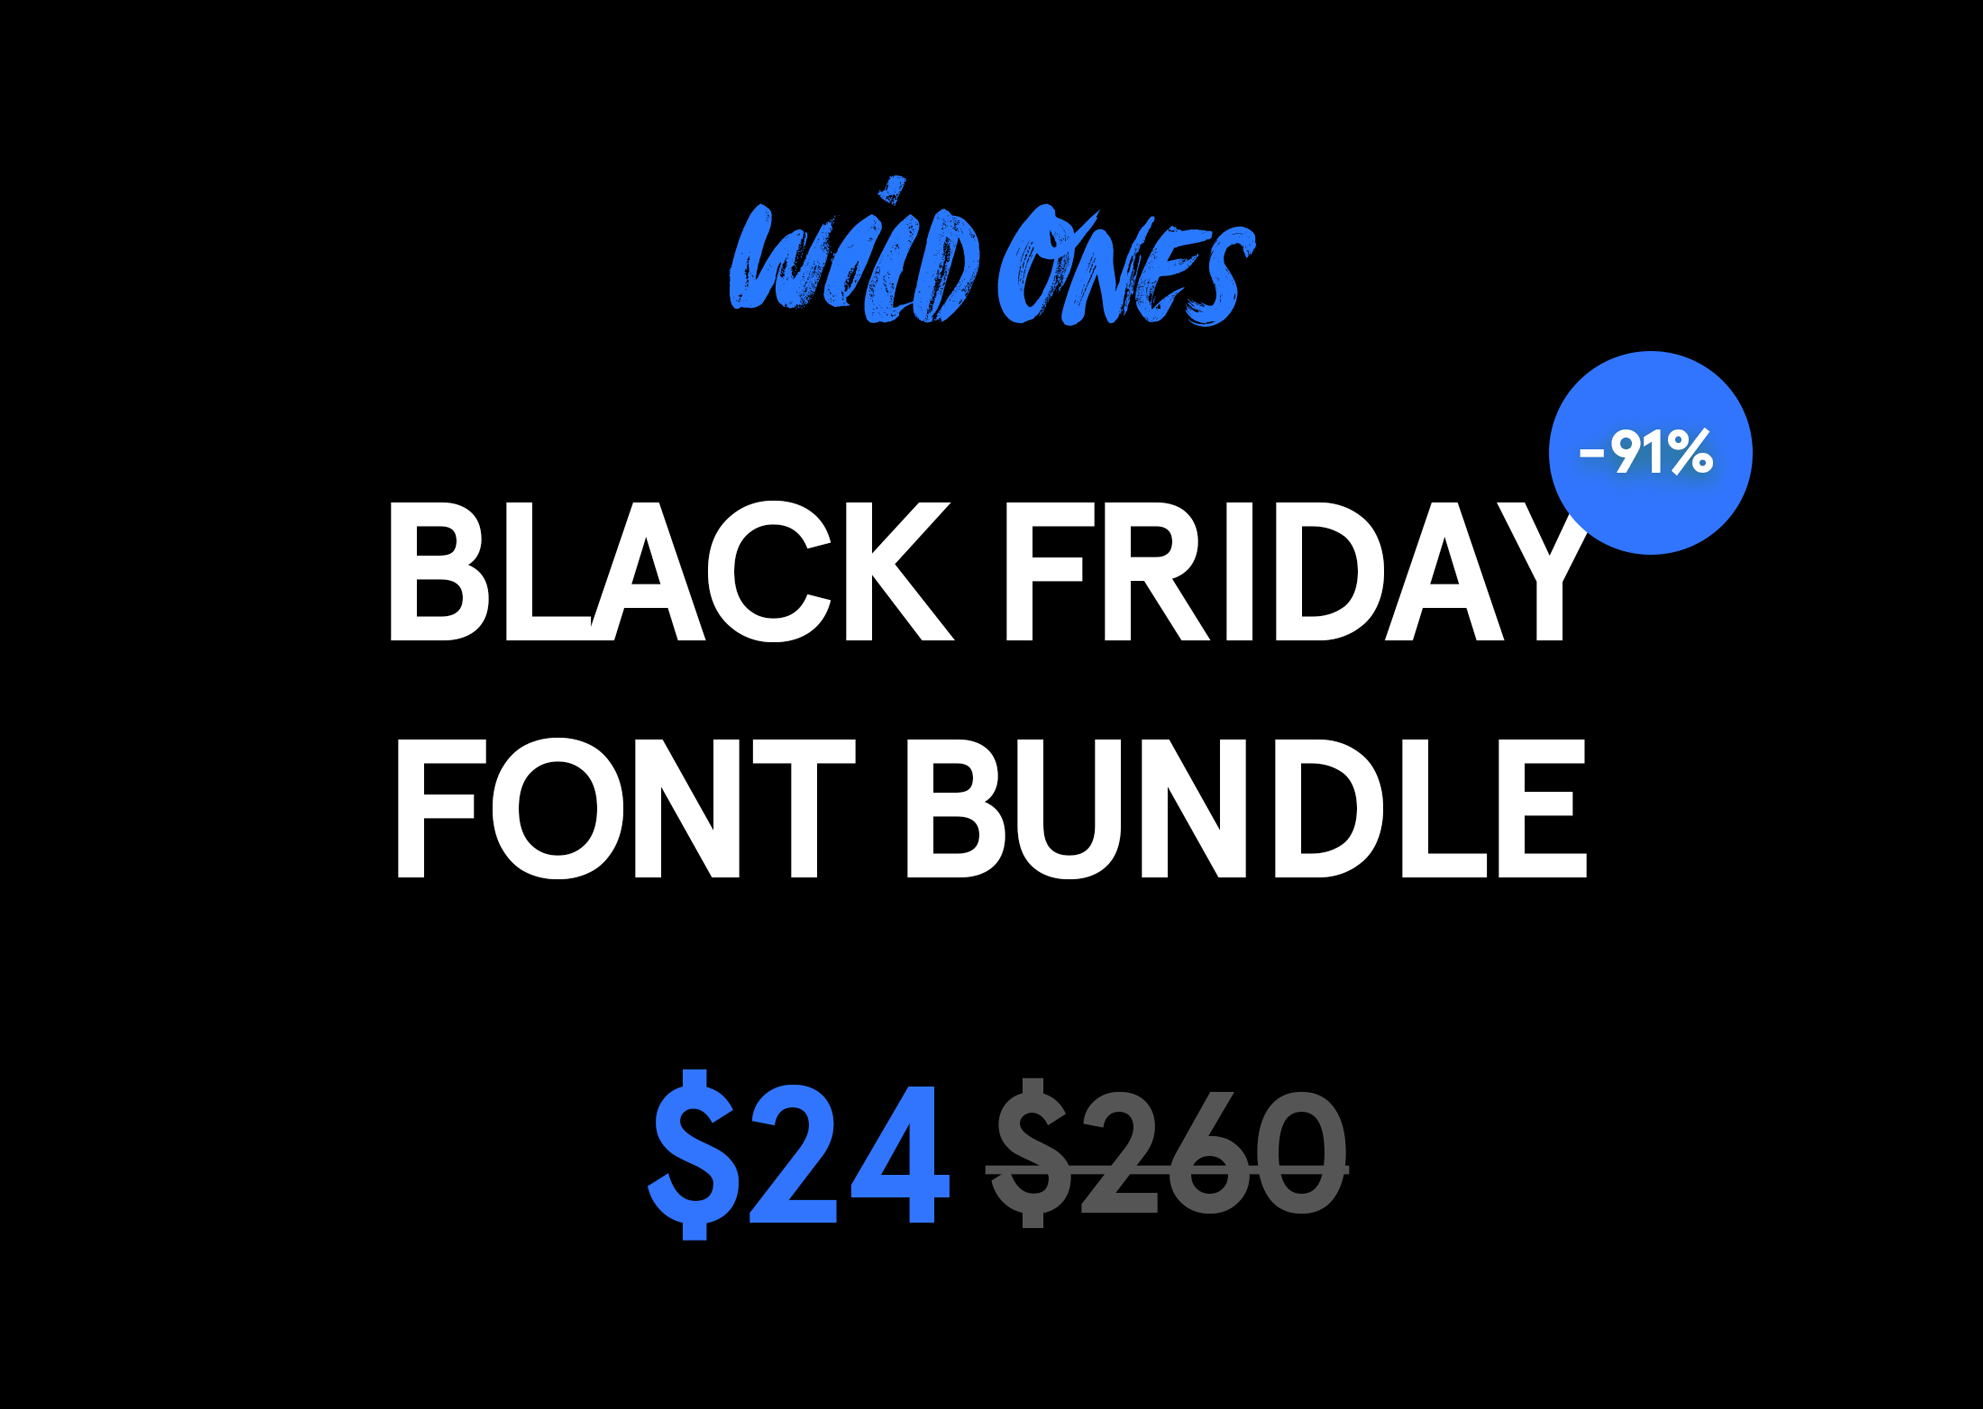 Black Friday Font Bundle